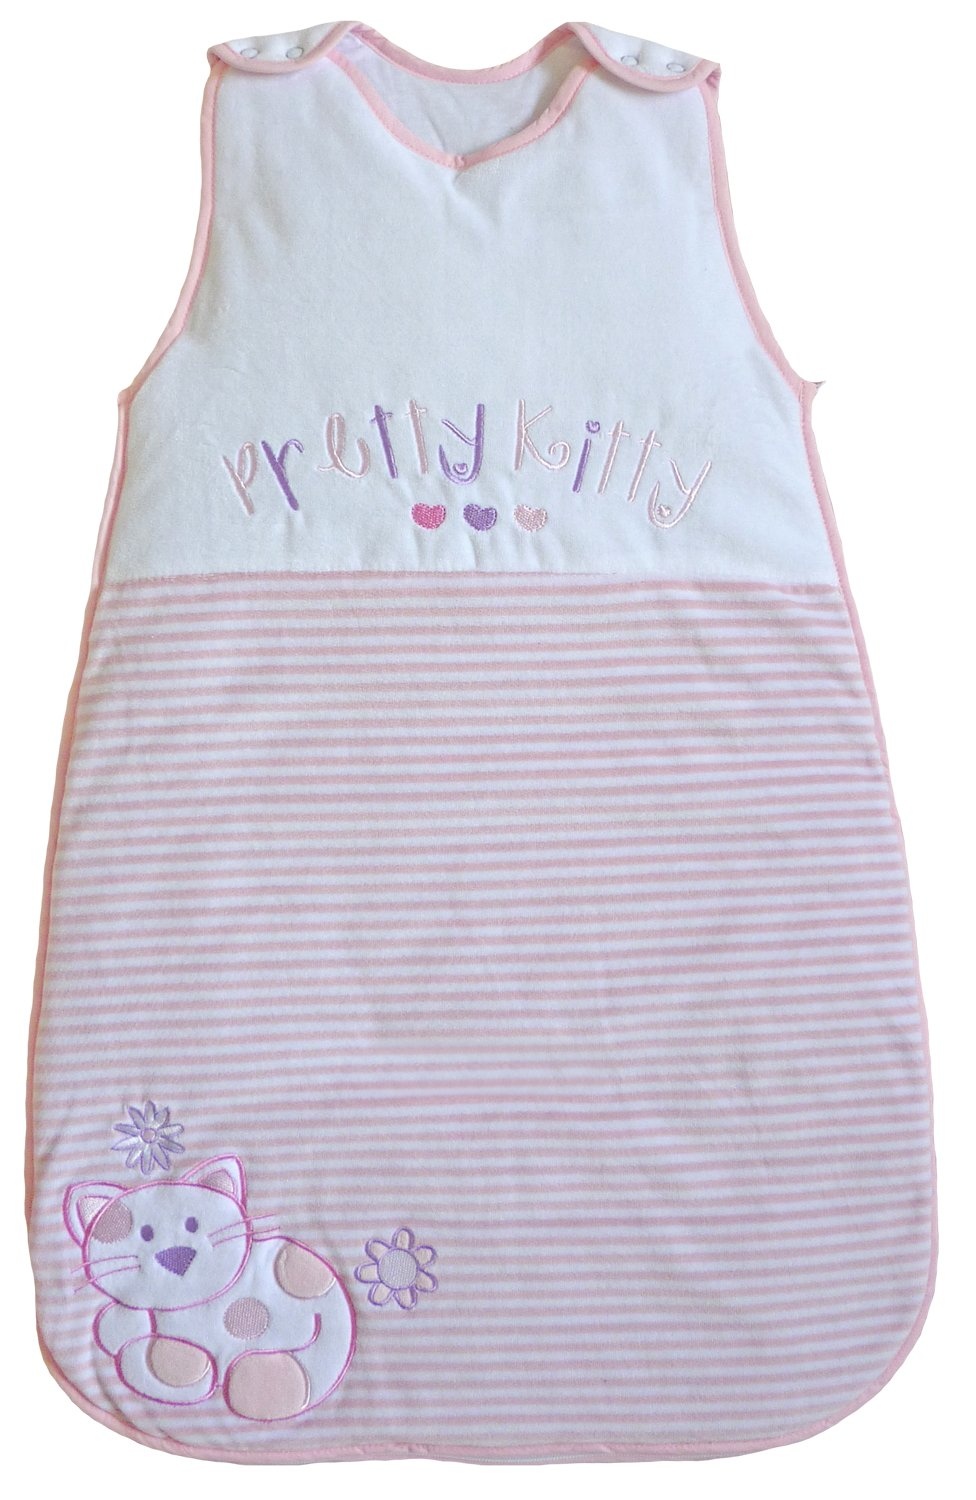 LIMITED TIME OFFER! The Dream Bag Baby Sleeping Bag Pretty Kitty Velour 0-6 months 2.5 TOG by The Dream Bag   B005UM7HLI